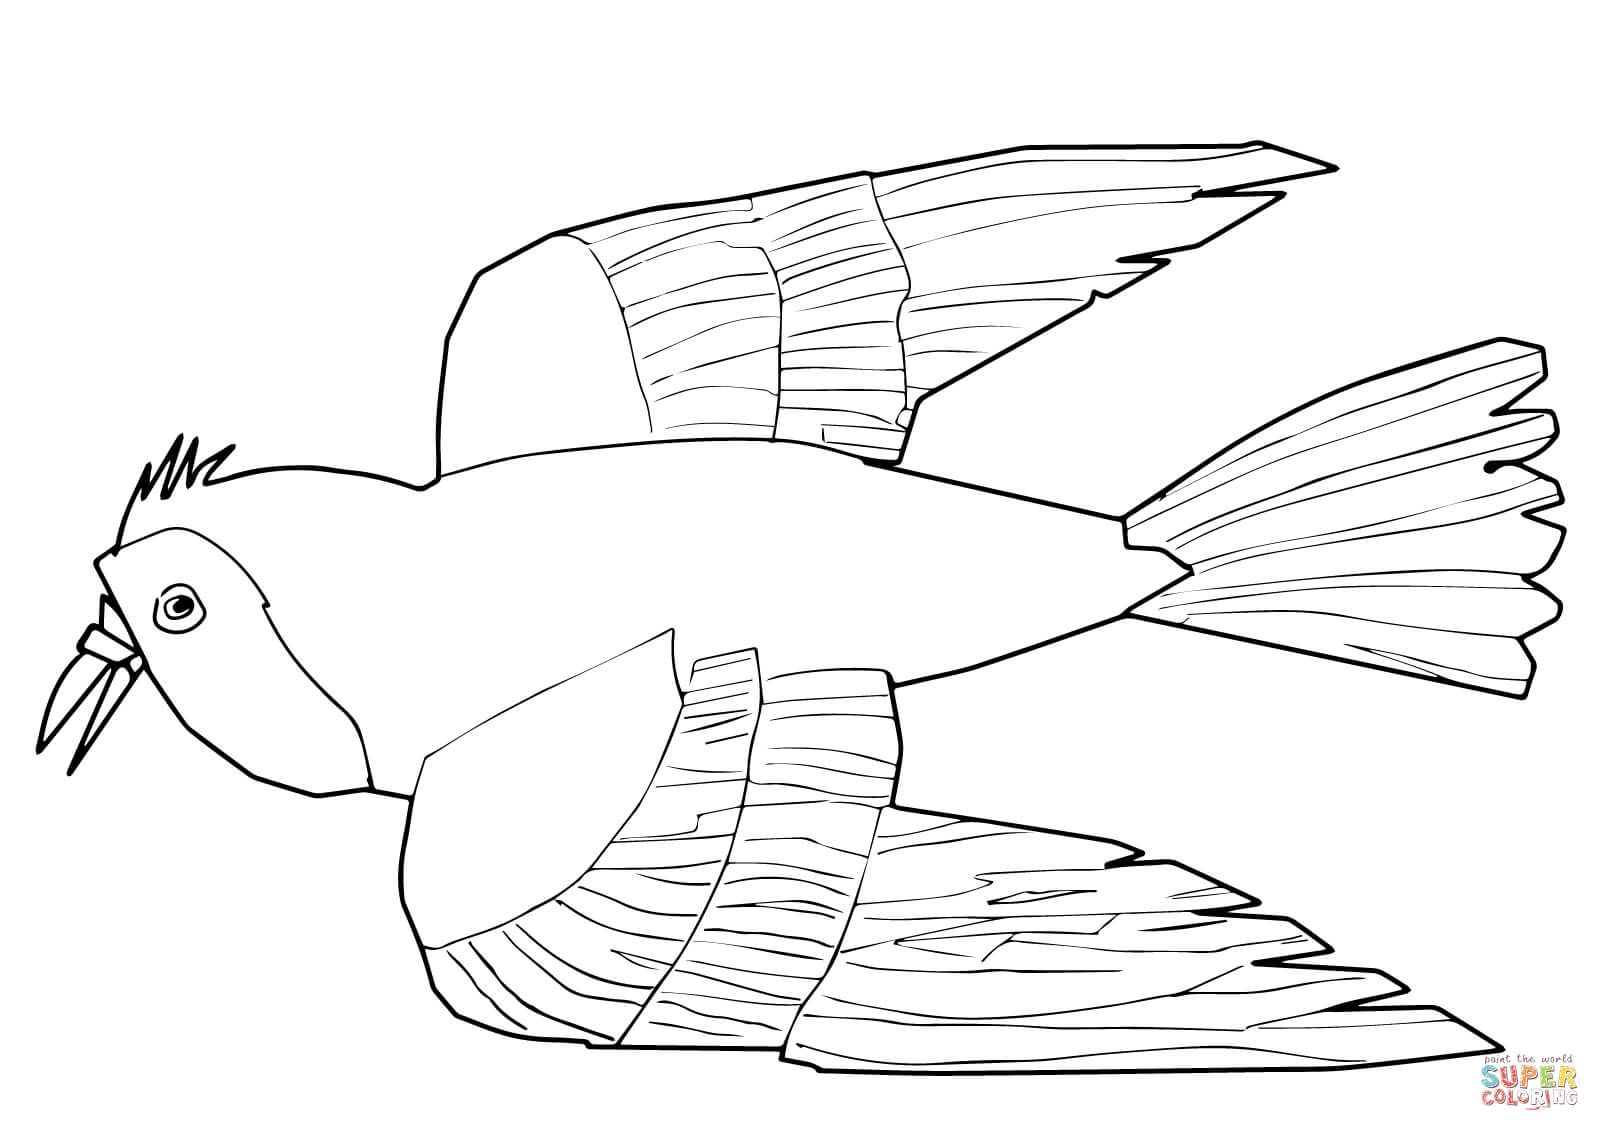 Red Bird Red Bird What Do You See Super Coloring Bird Coloring Pages Coloring Pages Bear Coloring Pages